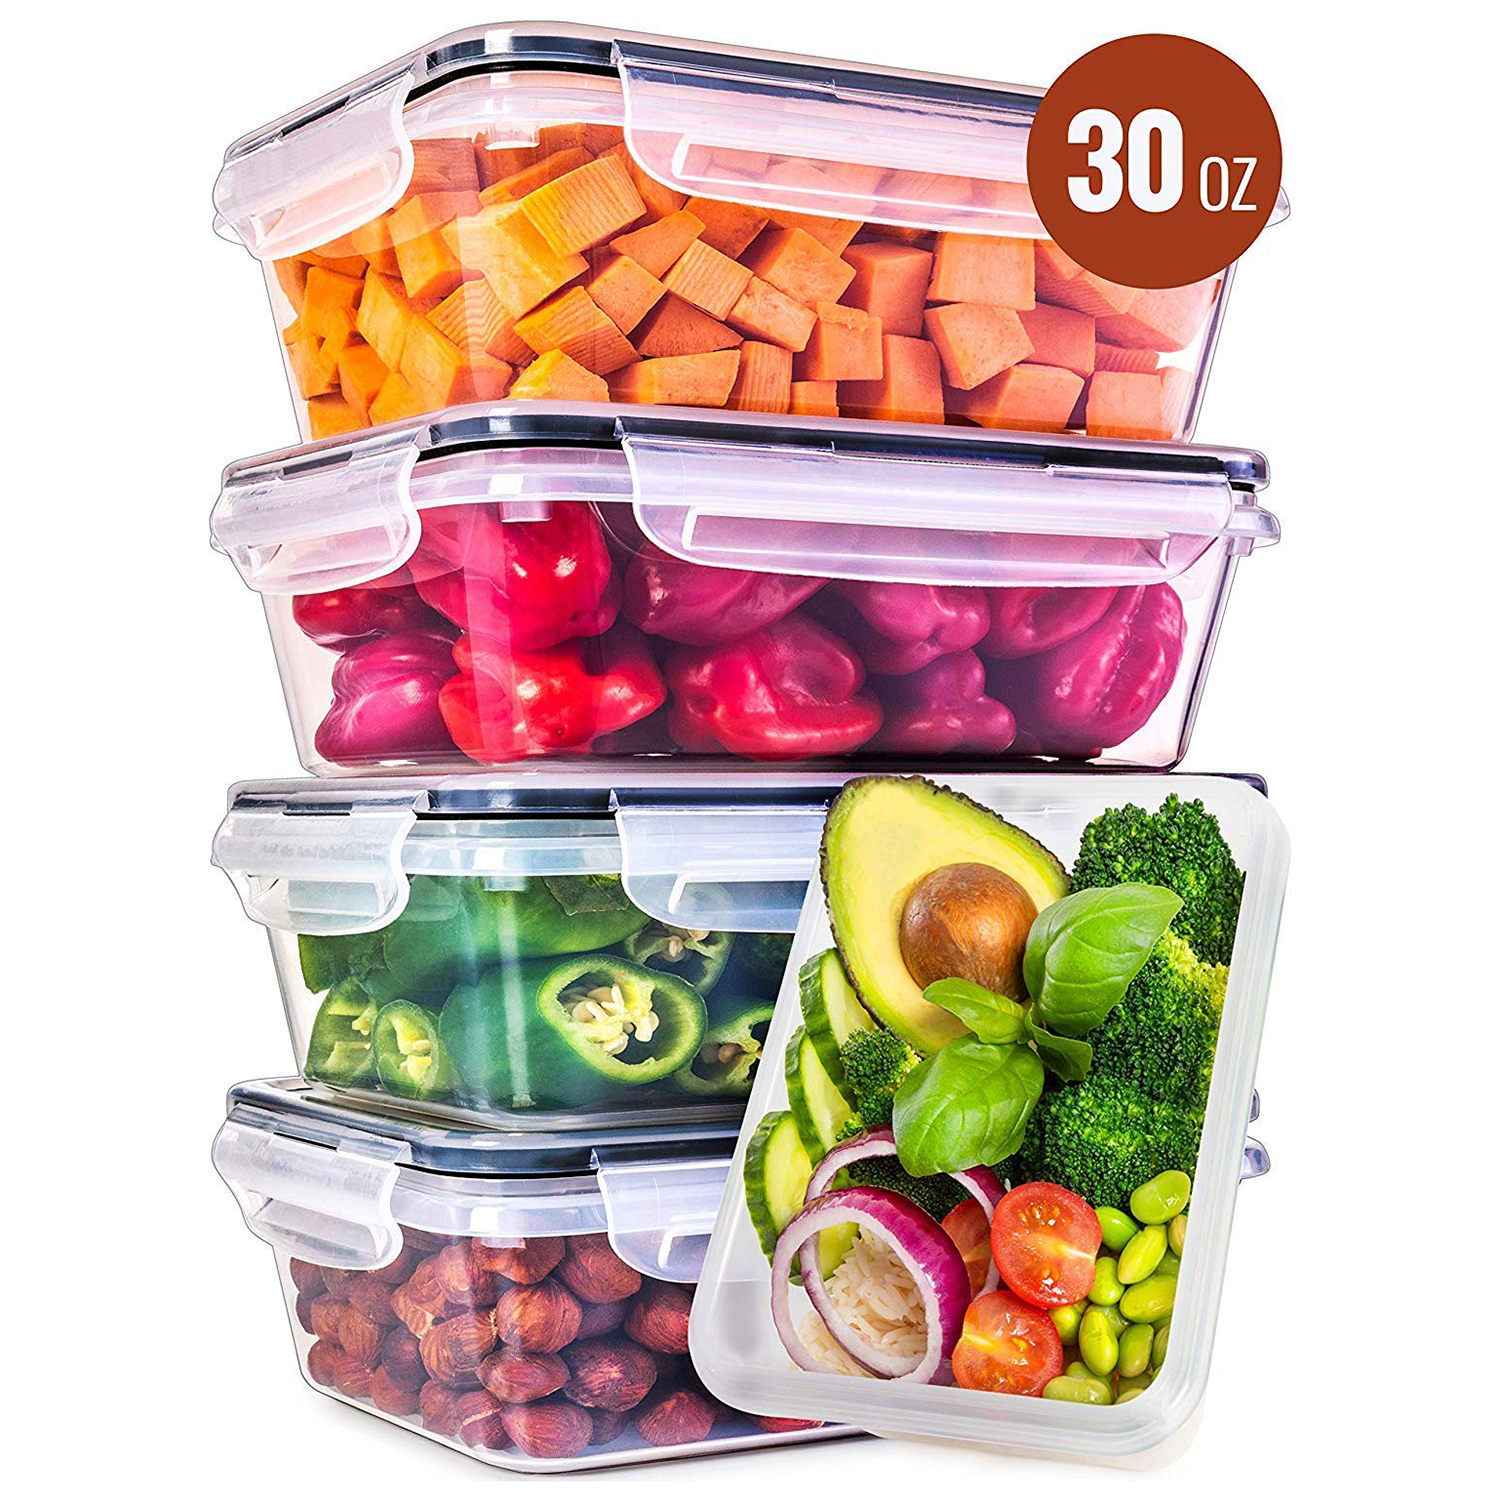 Lids Plastic Containers with Lids 5 Pack, 30 Ounce Leak Proof